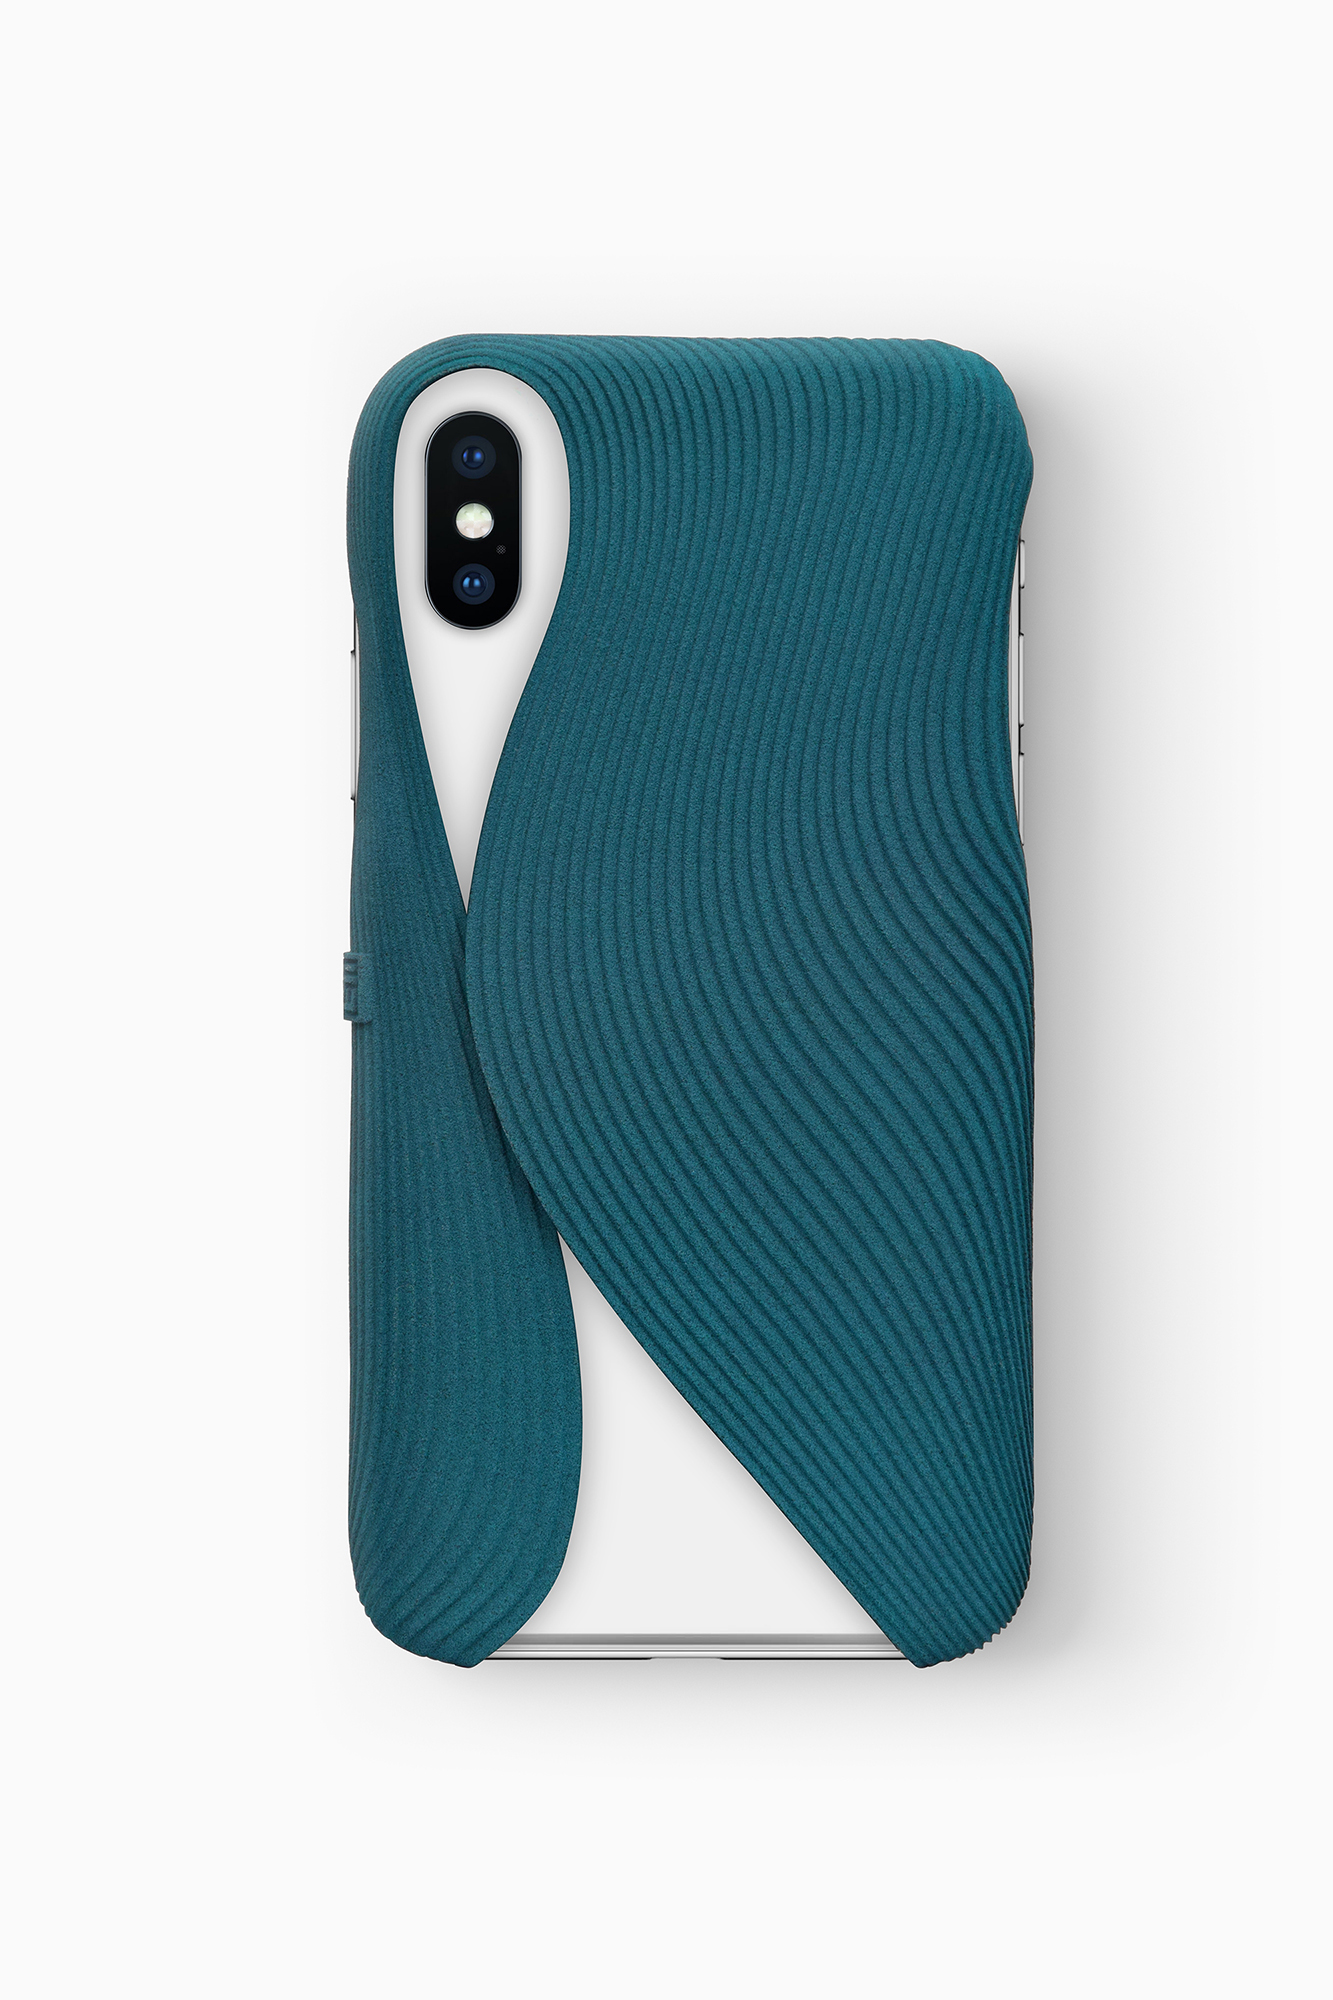 FOLD Case for iPhone X in Blue, Design by Matthijs Kok for Freshfiber